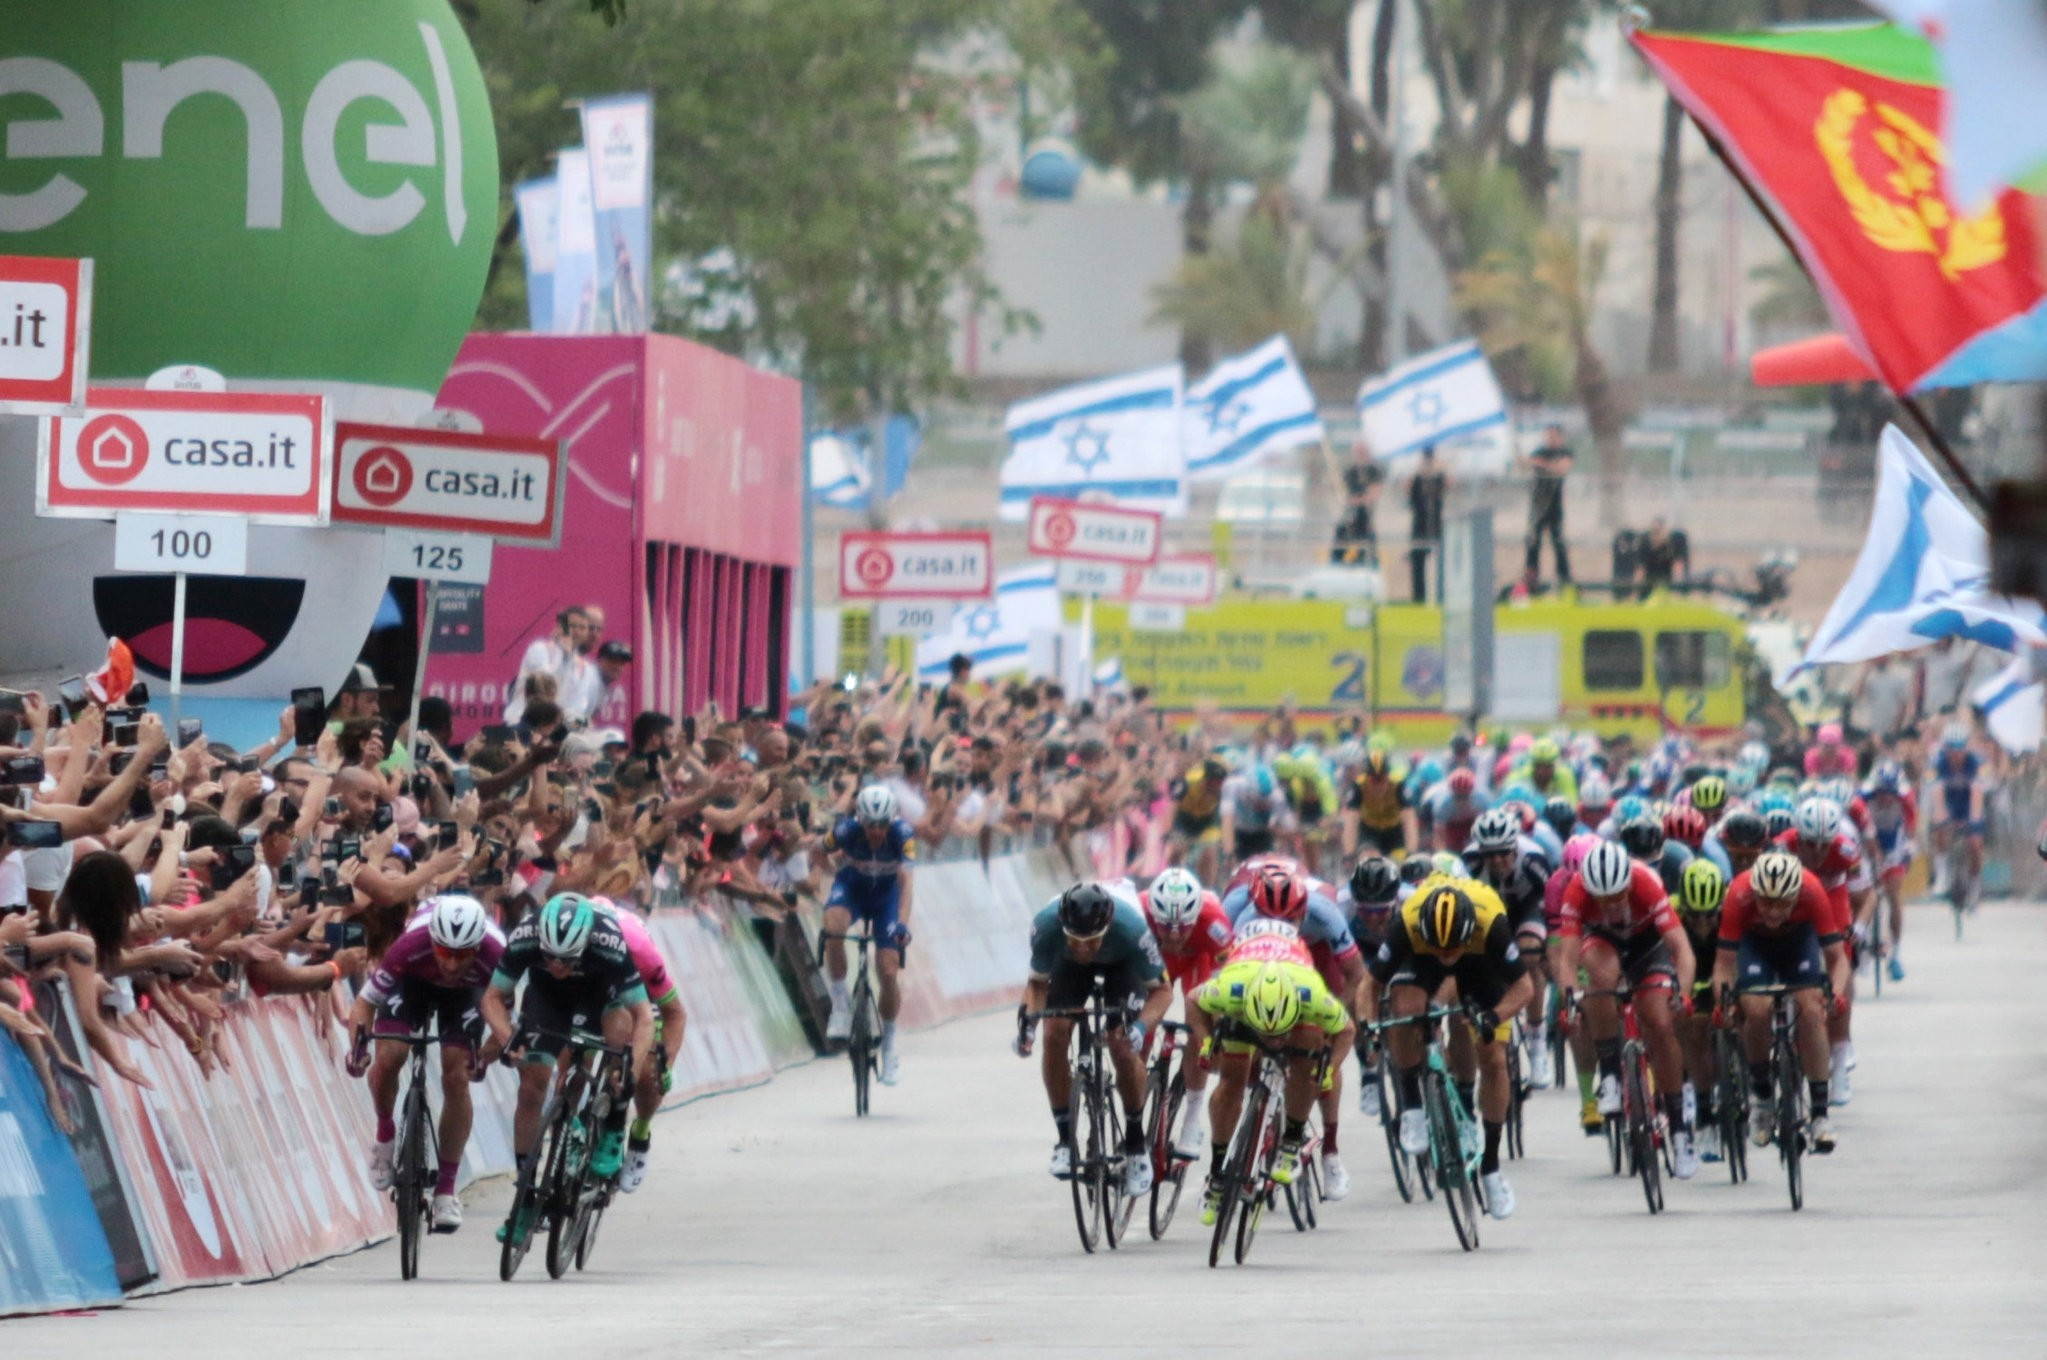 Cycling - the 101st Giro d'Italia cycling race - The 229-km Stage 3 from Beersheba to Eilat, Israel - May 6, 2018 - Team Quick-Step rider Elia Viviani of Italy (L) rides to win the 3rd stage in Eilat, Israel. (REUTERS Photo)